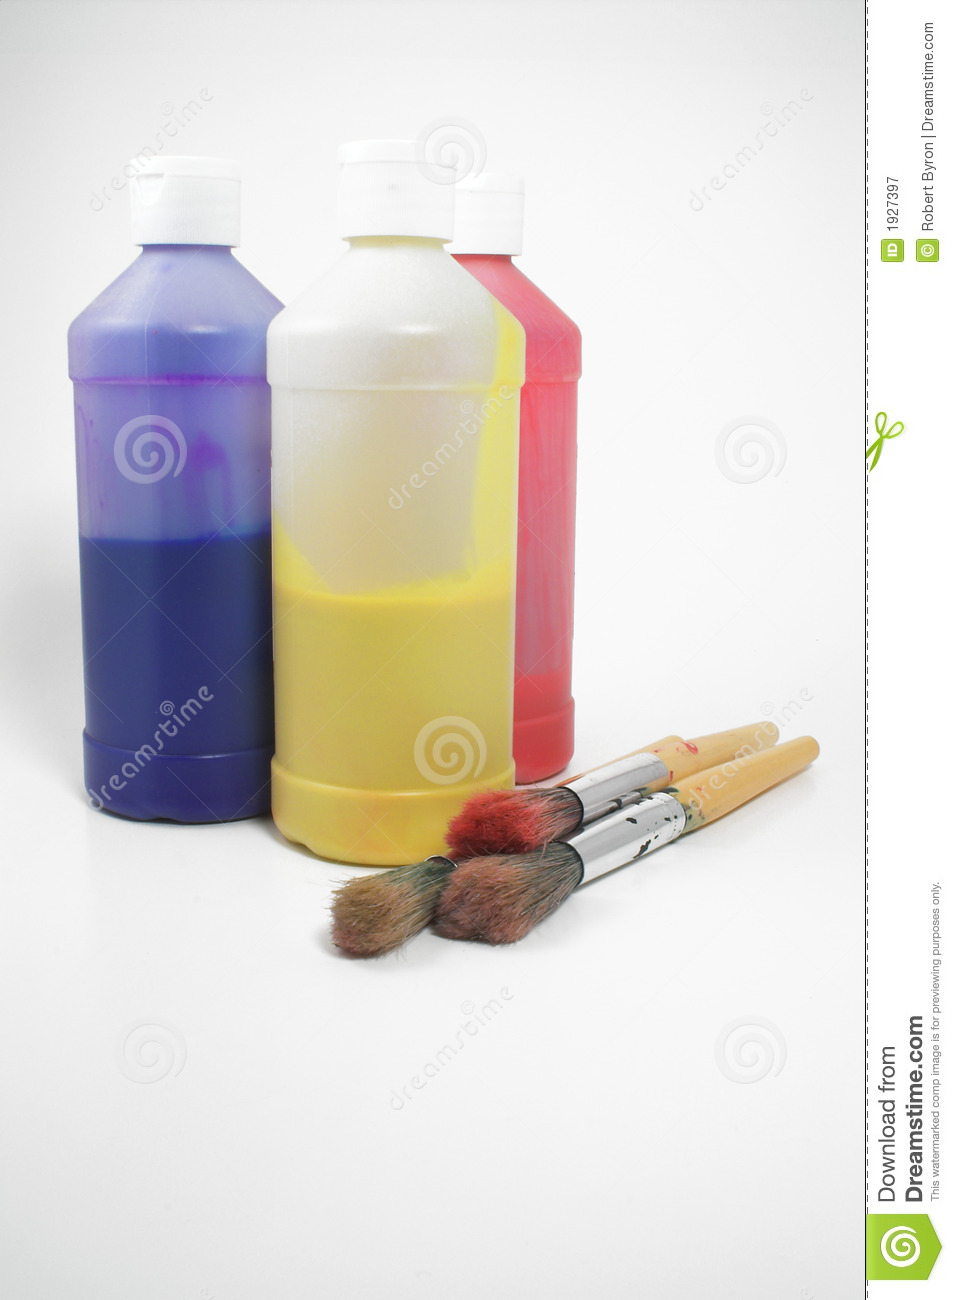 Painting supplies royalty free stock photography image for Bottle painting materials